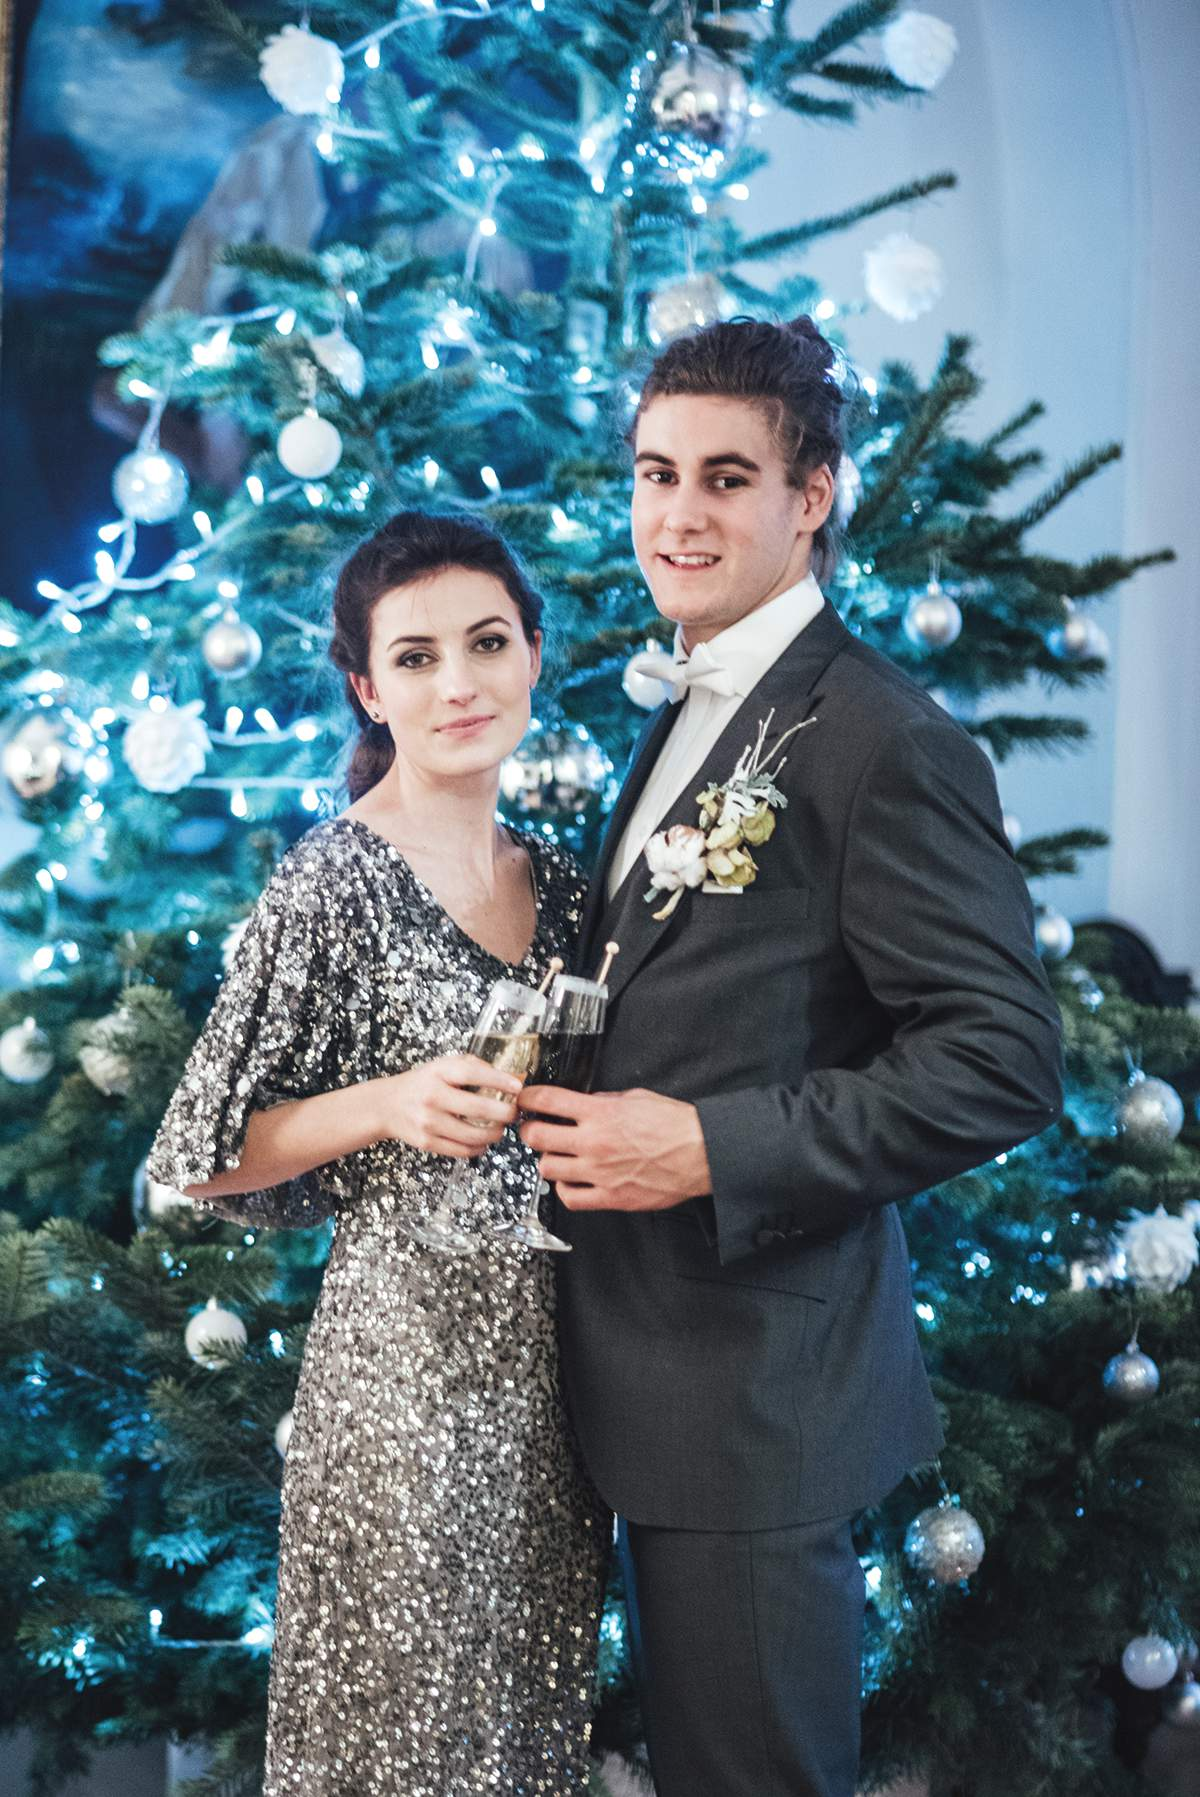 Luxe Winter Wonderland styled bridal shoot Deer Park Liberty Pearl Photography-298